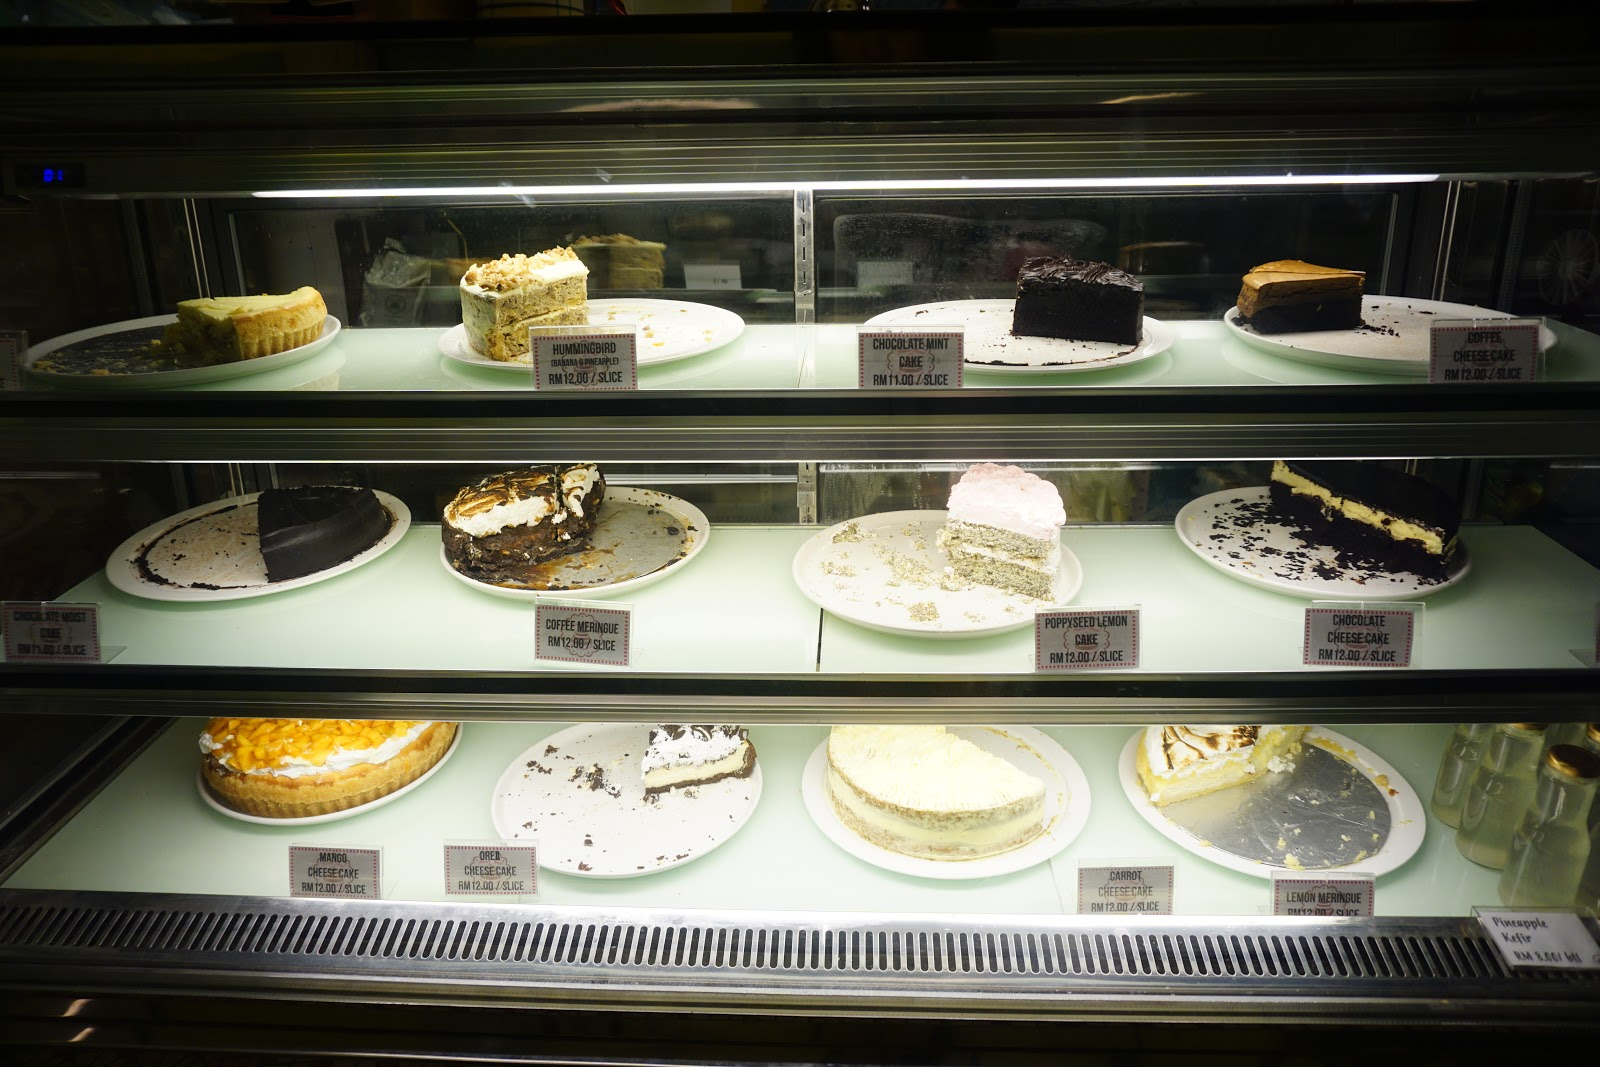 Passion Heart Cafe at Muntri Street Georgetown, Penang for homemade cakes.